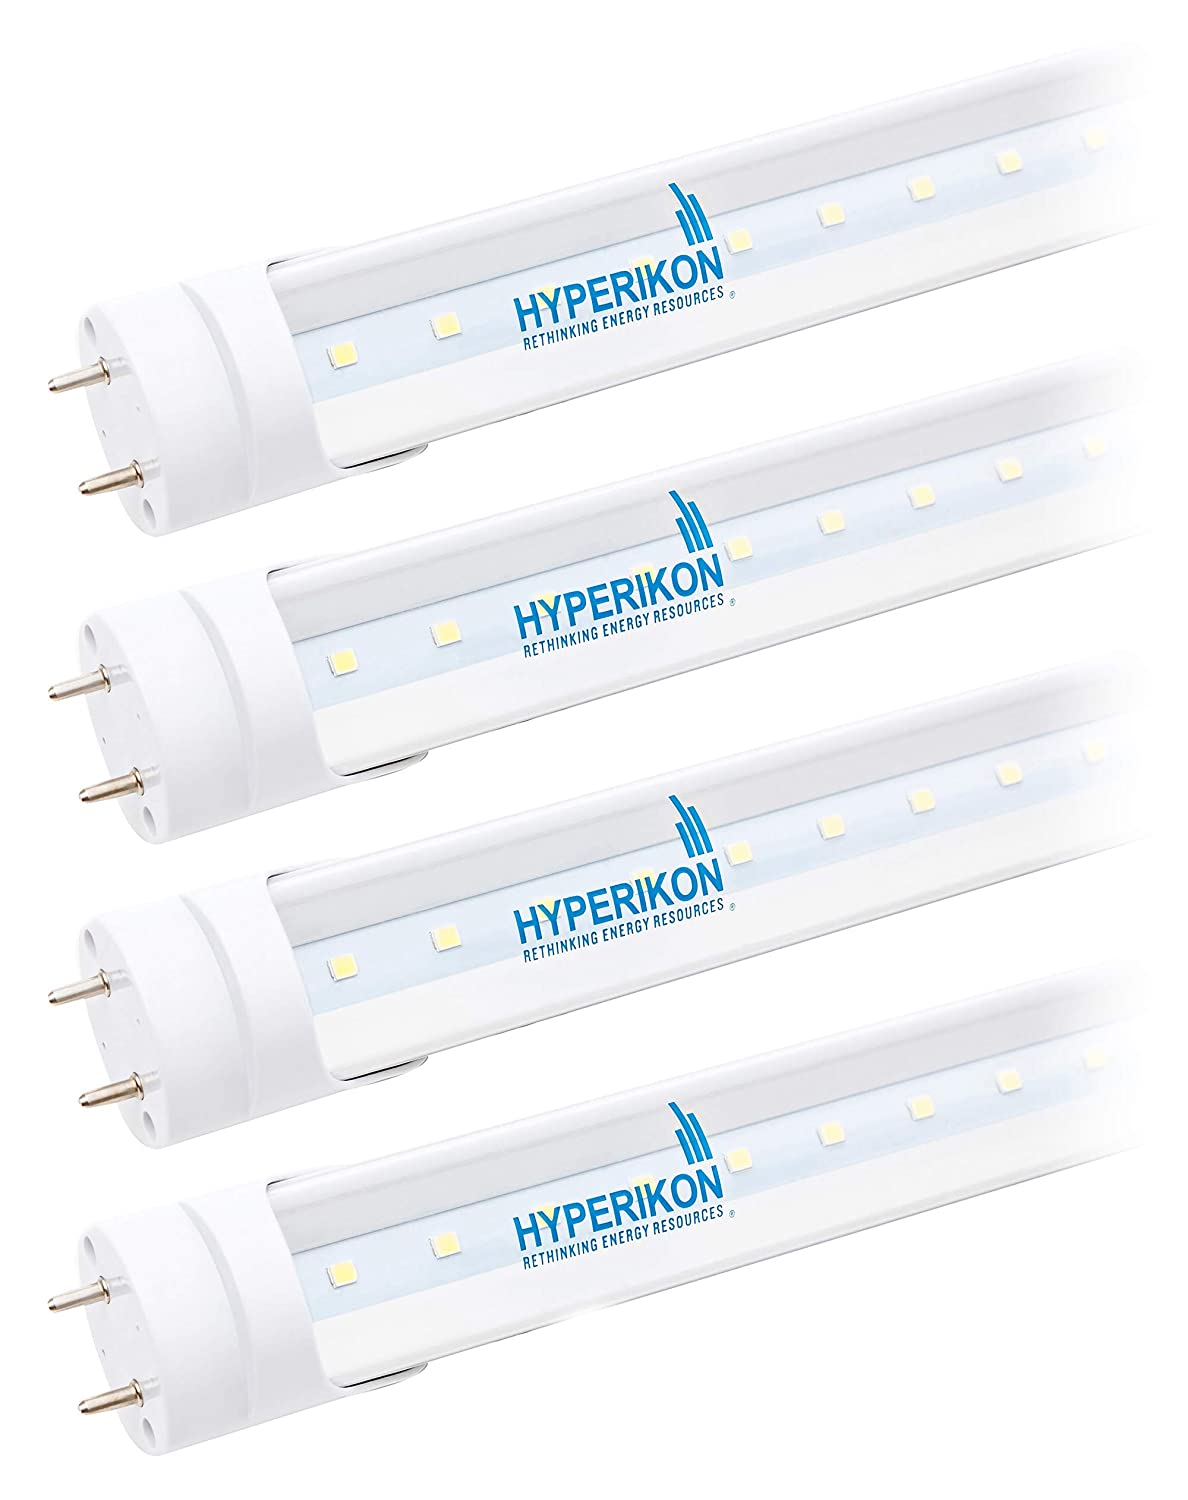 Hyperikon T8 T10 T12 2ft LED Bulbs, Fluorescent Replacement Tube, Dual-End Powered, 8W (25W Equiv.), 4000K, Clear, 1150 Lumens, Shatterproof, Shop Light for Kitchen, Garage, Warehouse - Pack of 4